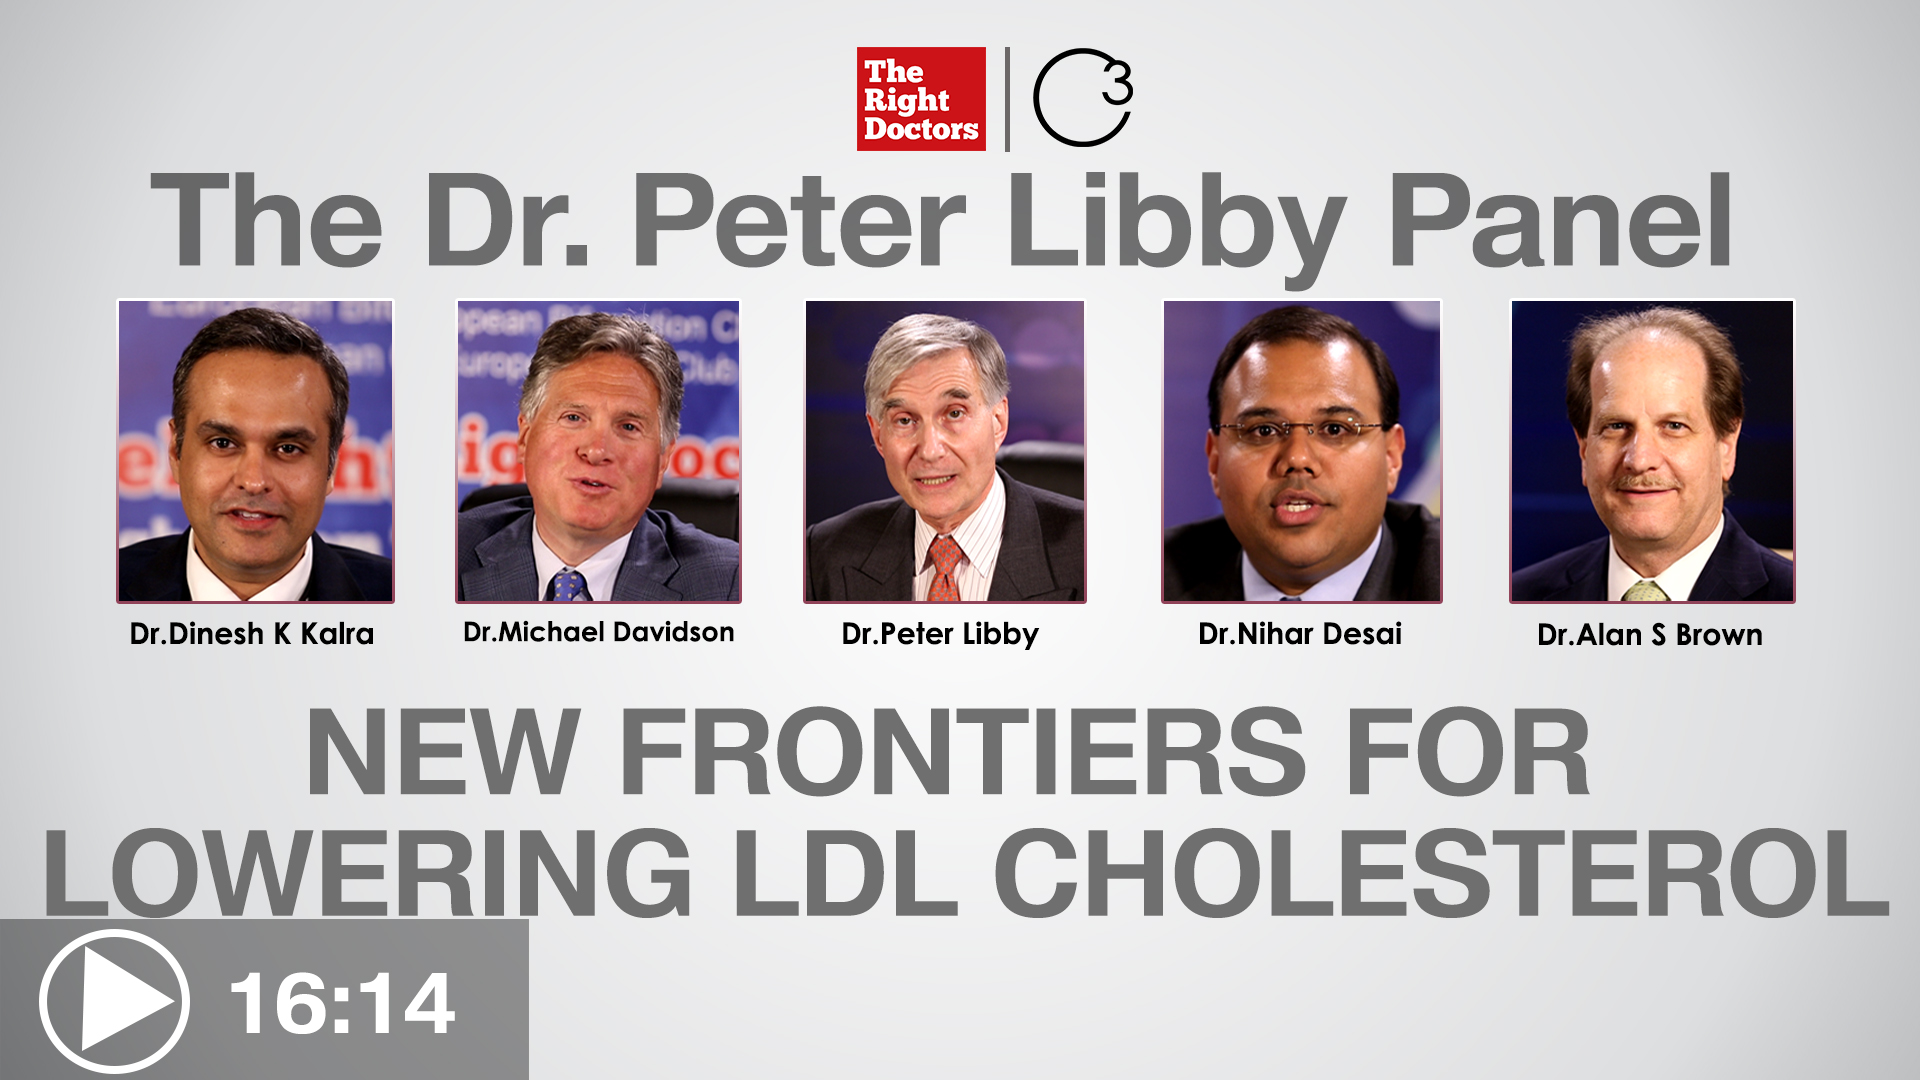 Dr.Peter Libby, Dr. Dinesh K. Kalra, Dr.Nihar Desai, Dr.Alan S.Brown, Dr.Michael H Davidson, New Frontiers for  Lowering LDL Cholesterol